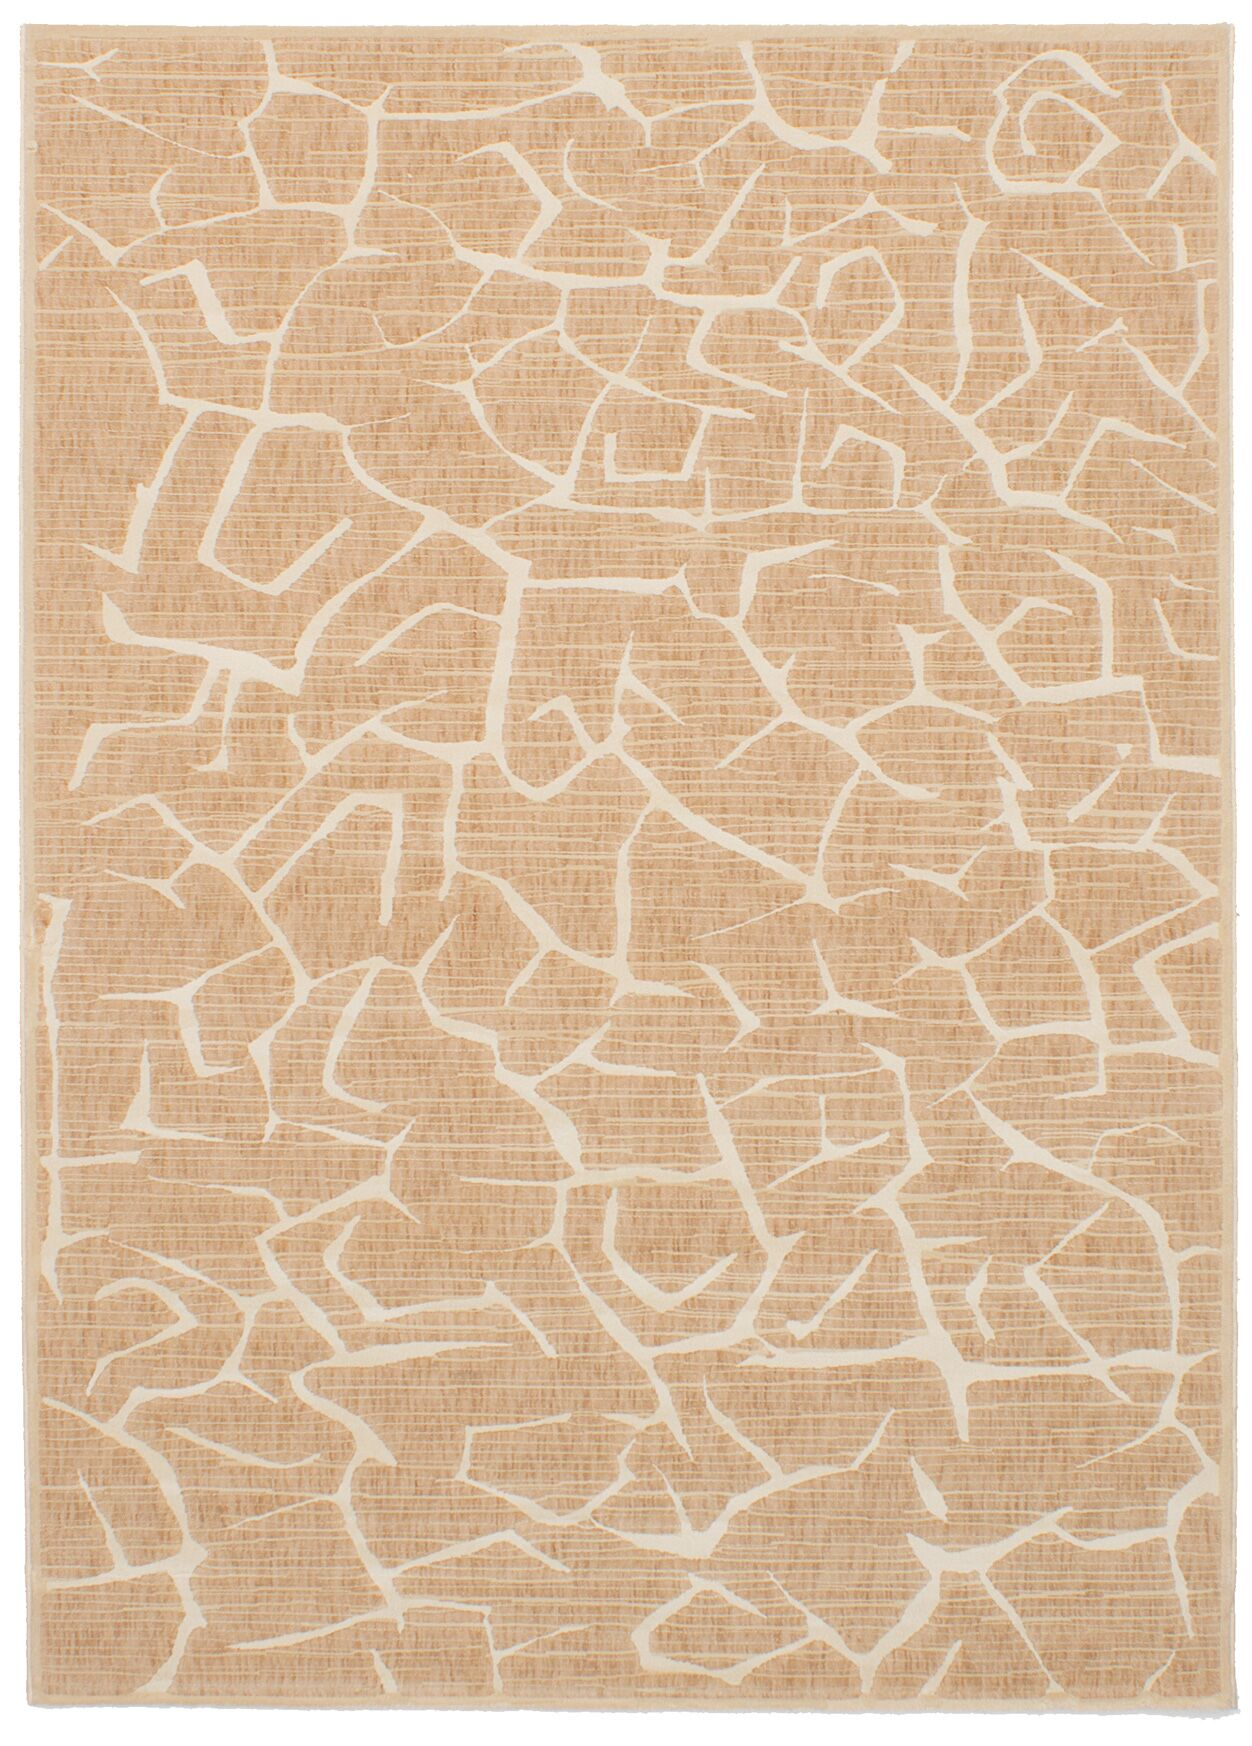 Raftery Tan Area Rug Rug Size: Rectangle 5'5